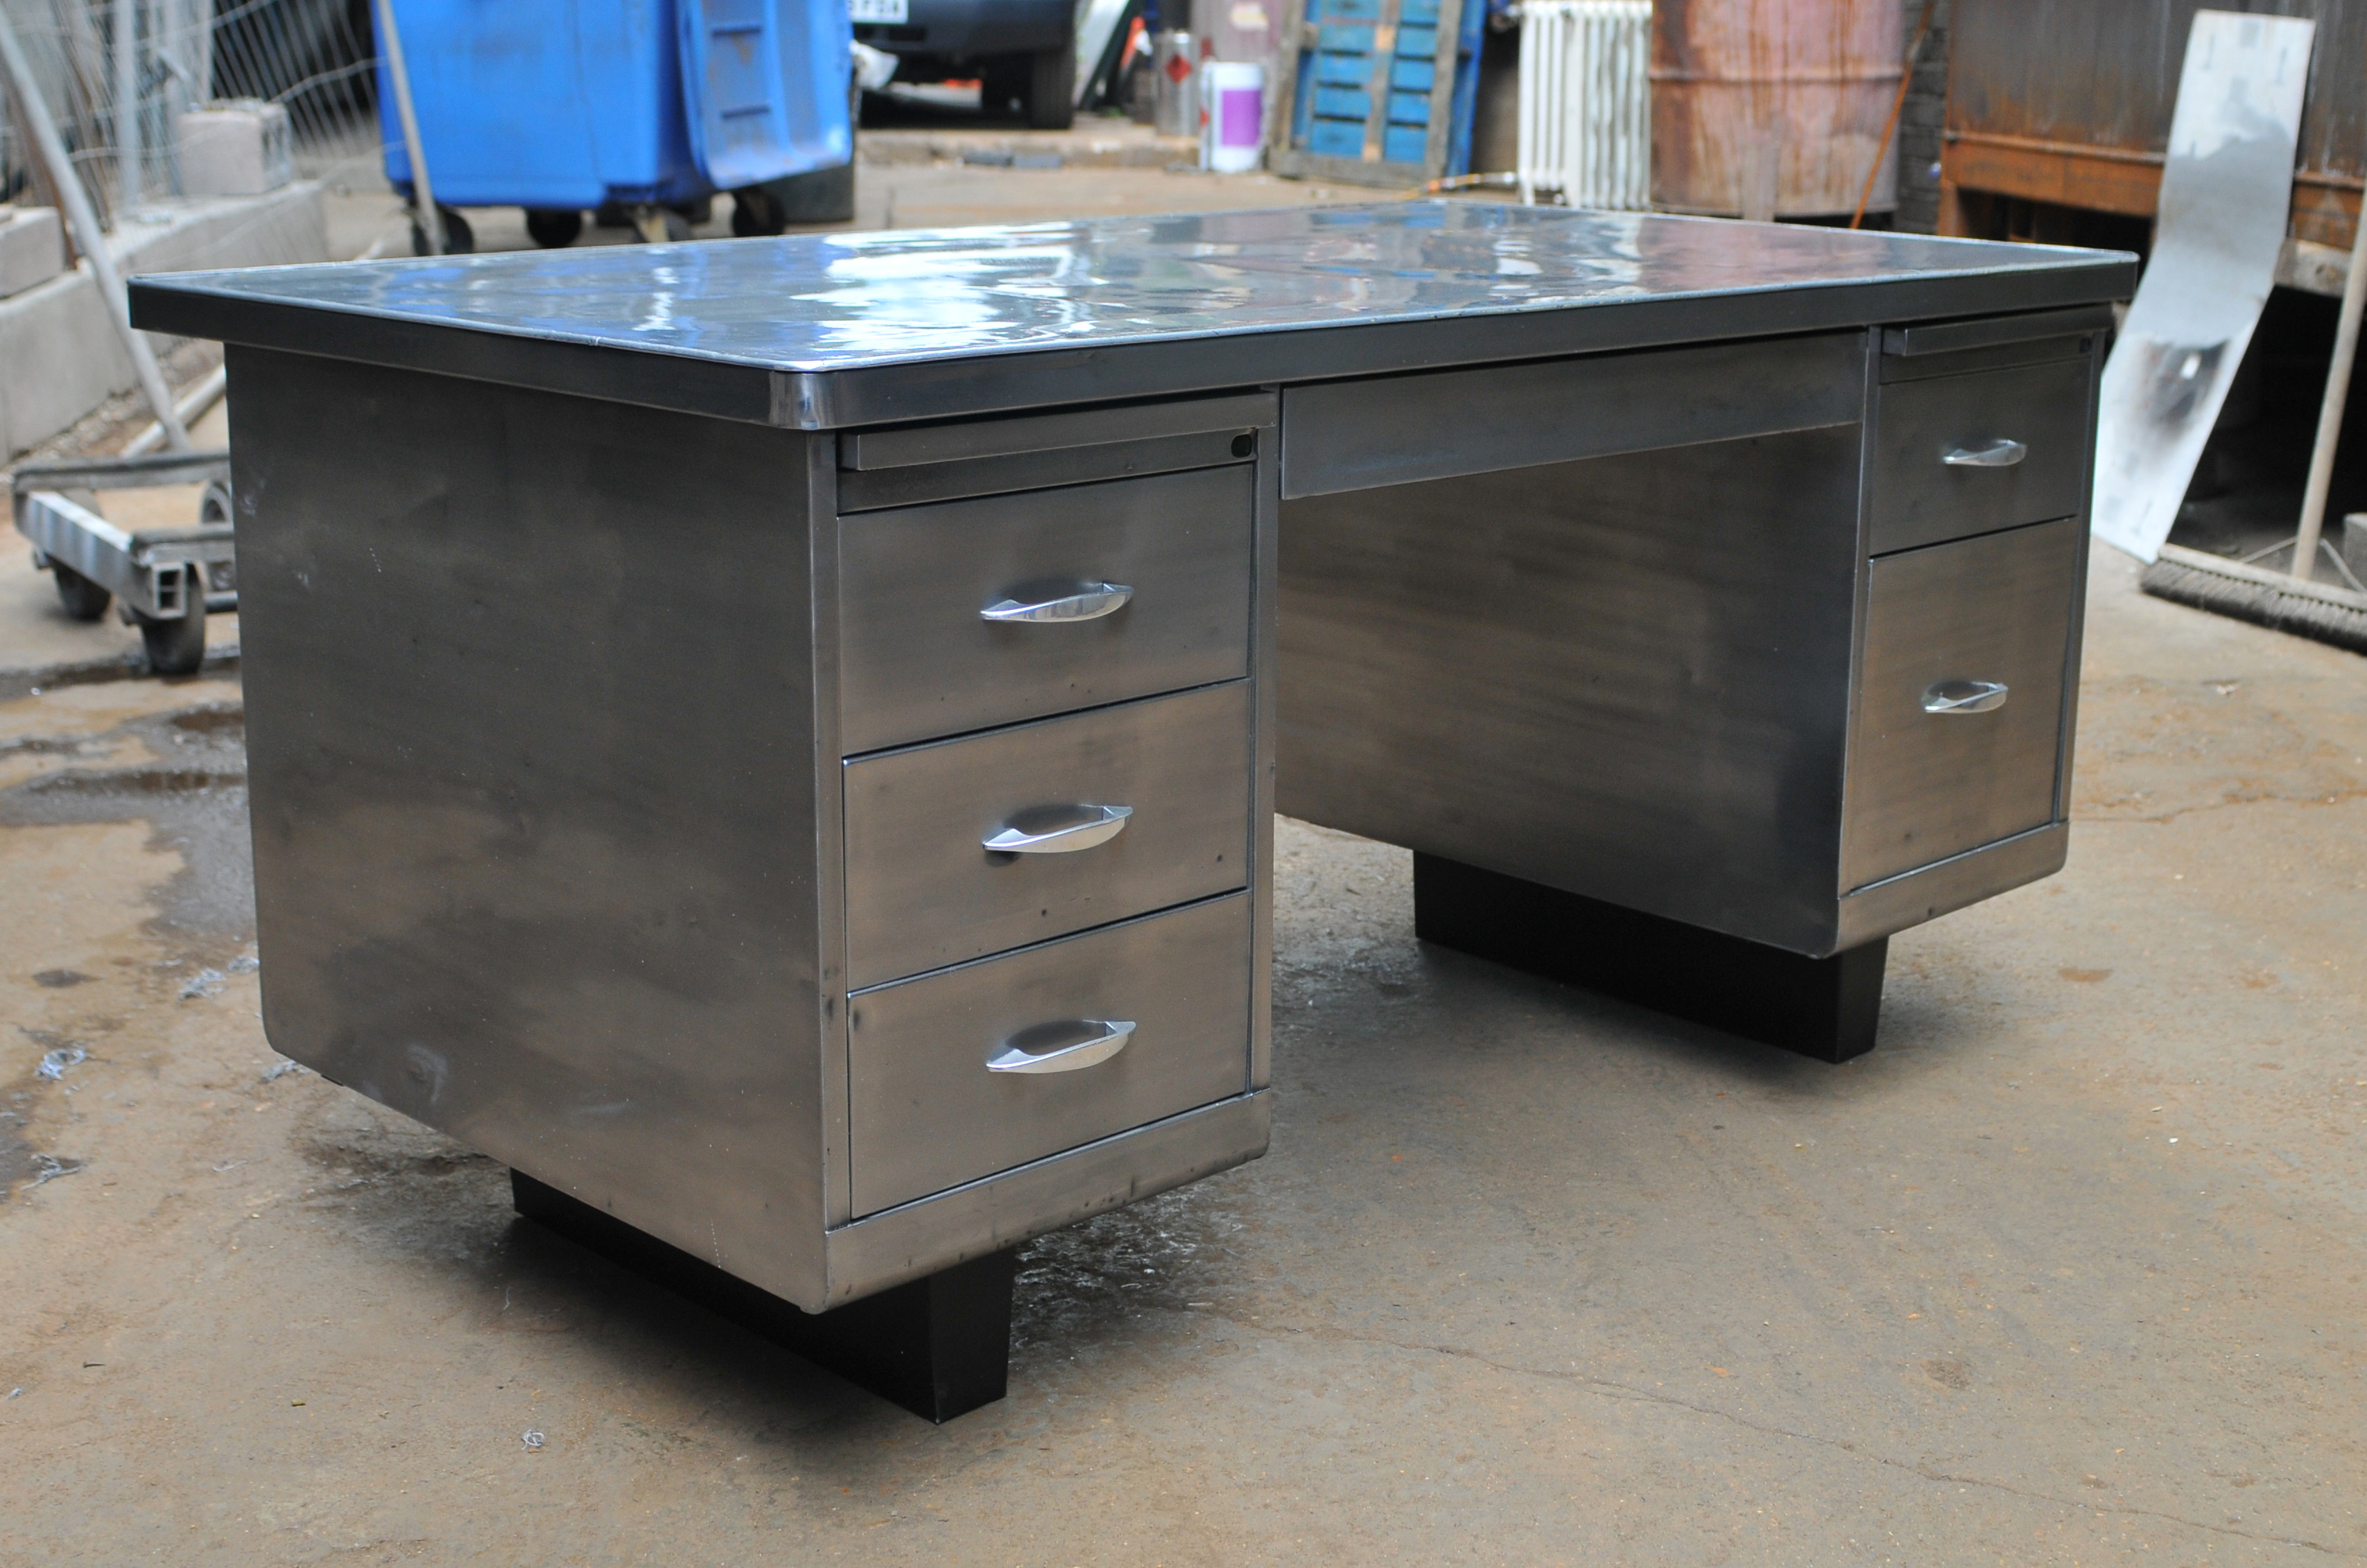 Exposed Metal for Vintage Steelcase Tanker Desk - Polish,wax ...